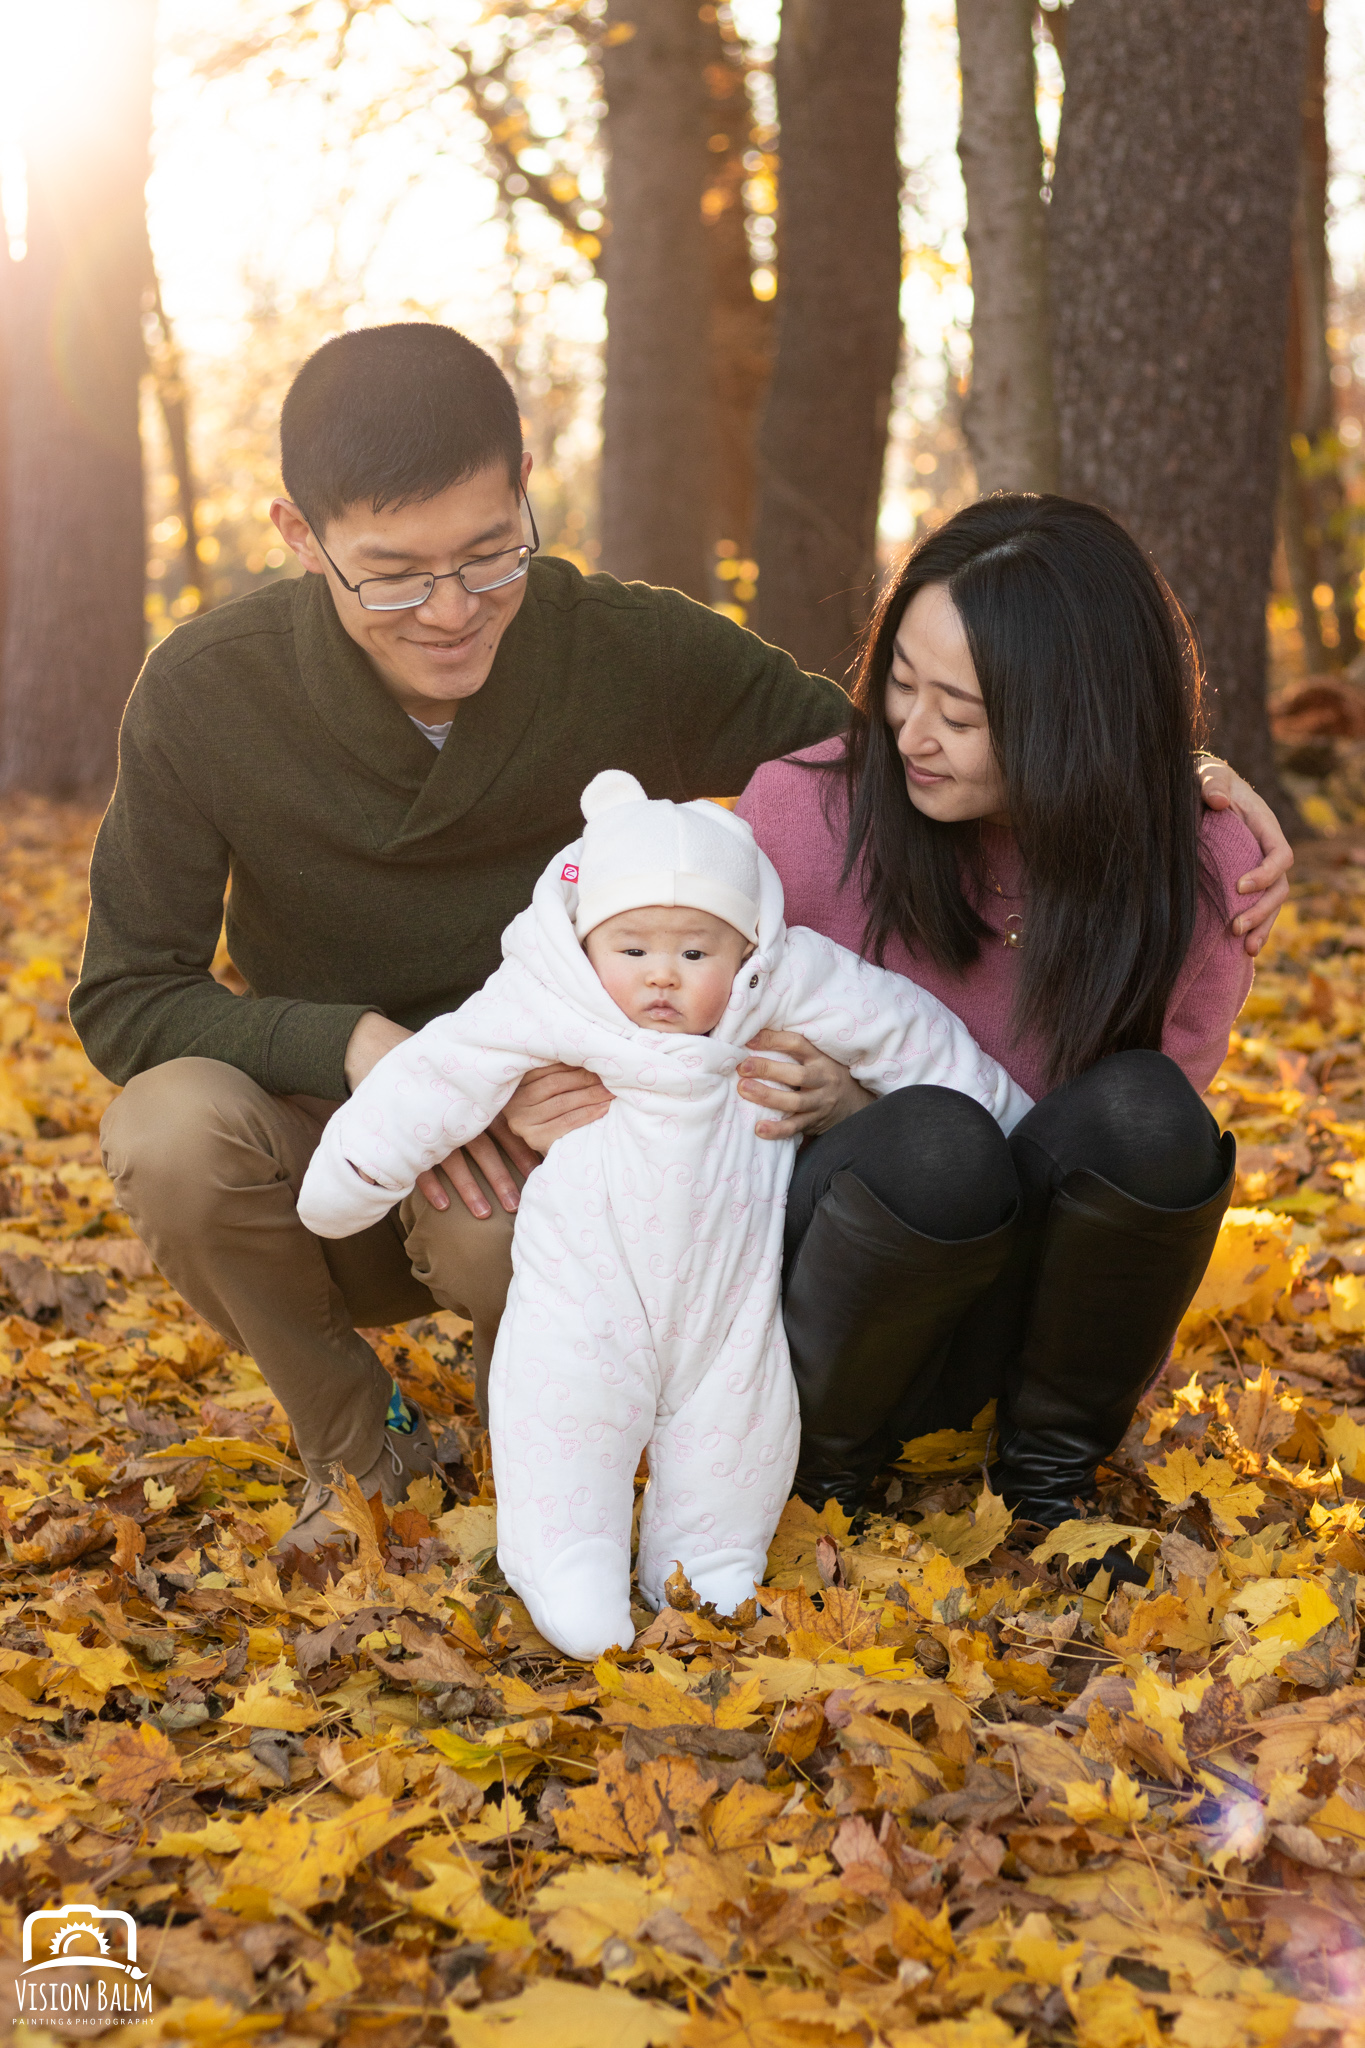 Family fall portrait of young couple with their baby in the park photographed by Vision Balm in Charleston, SC.